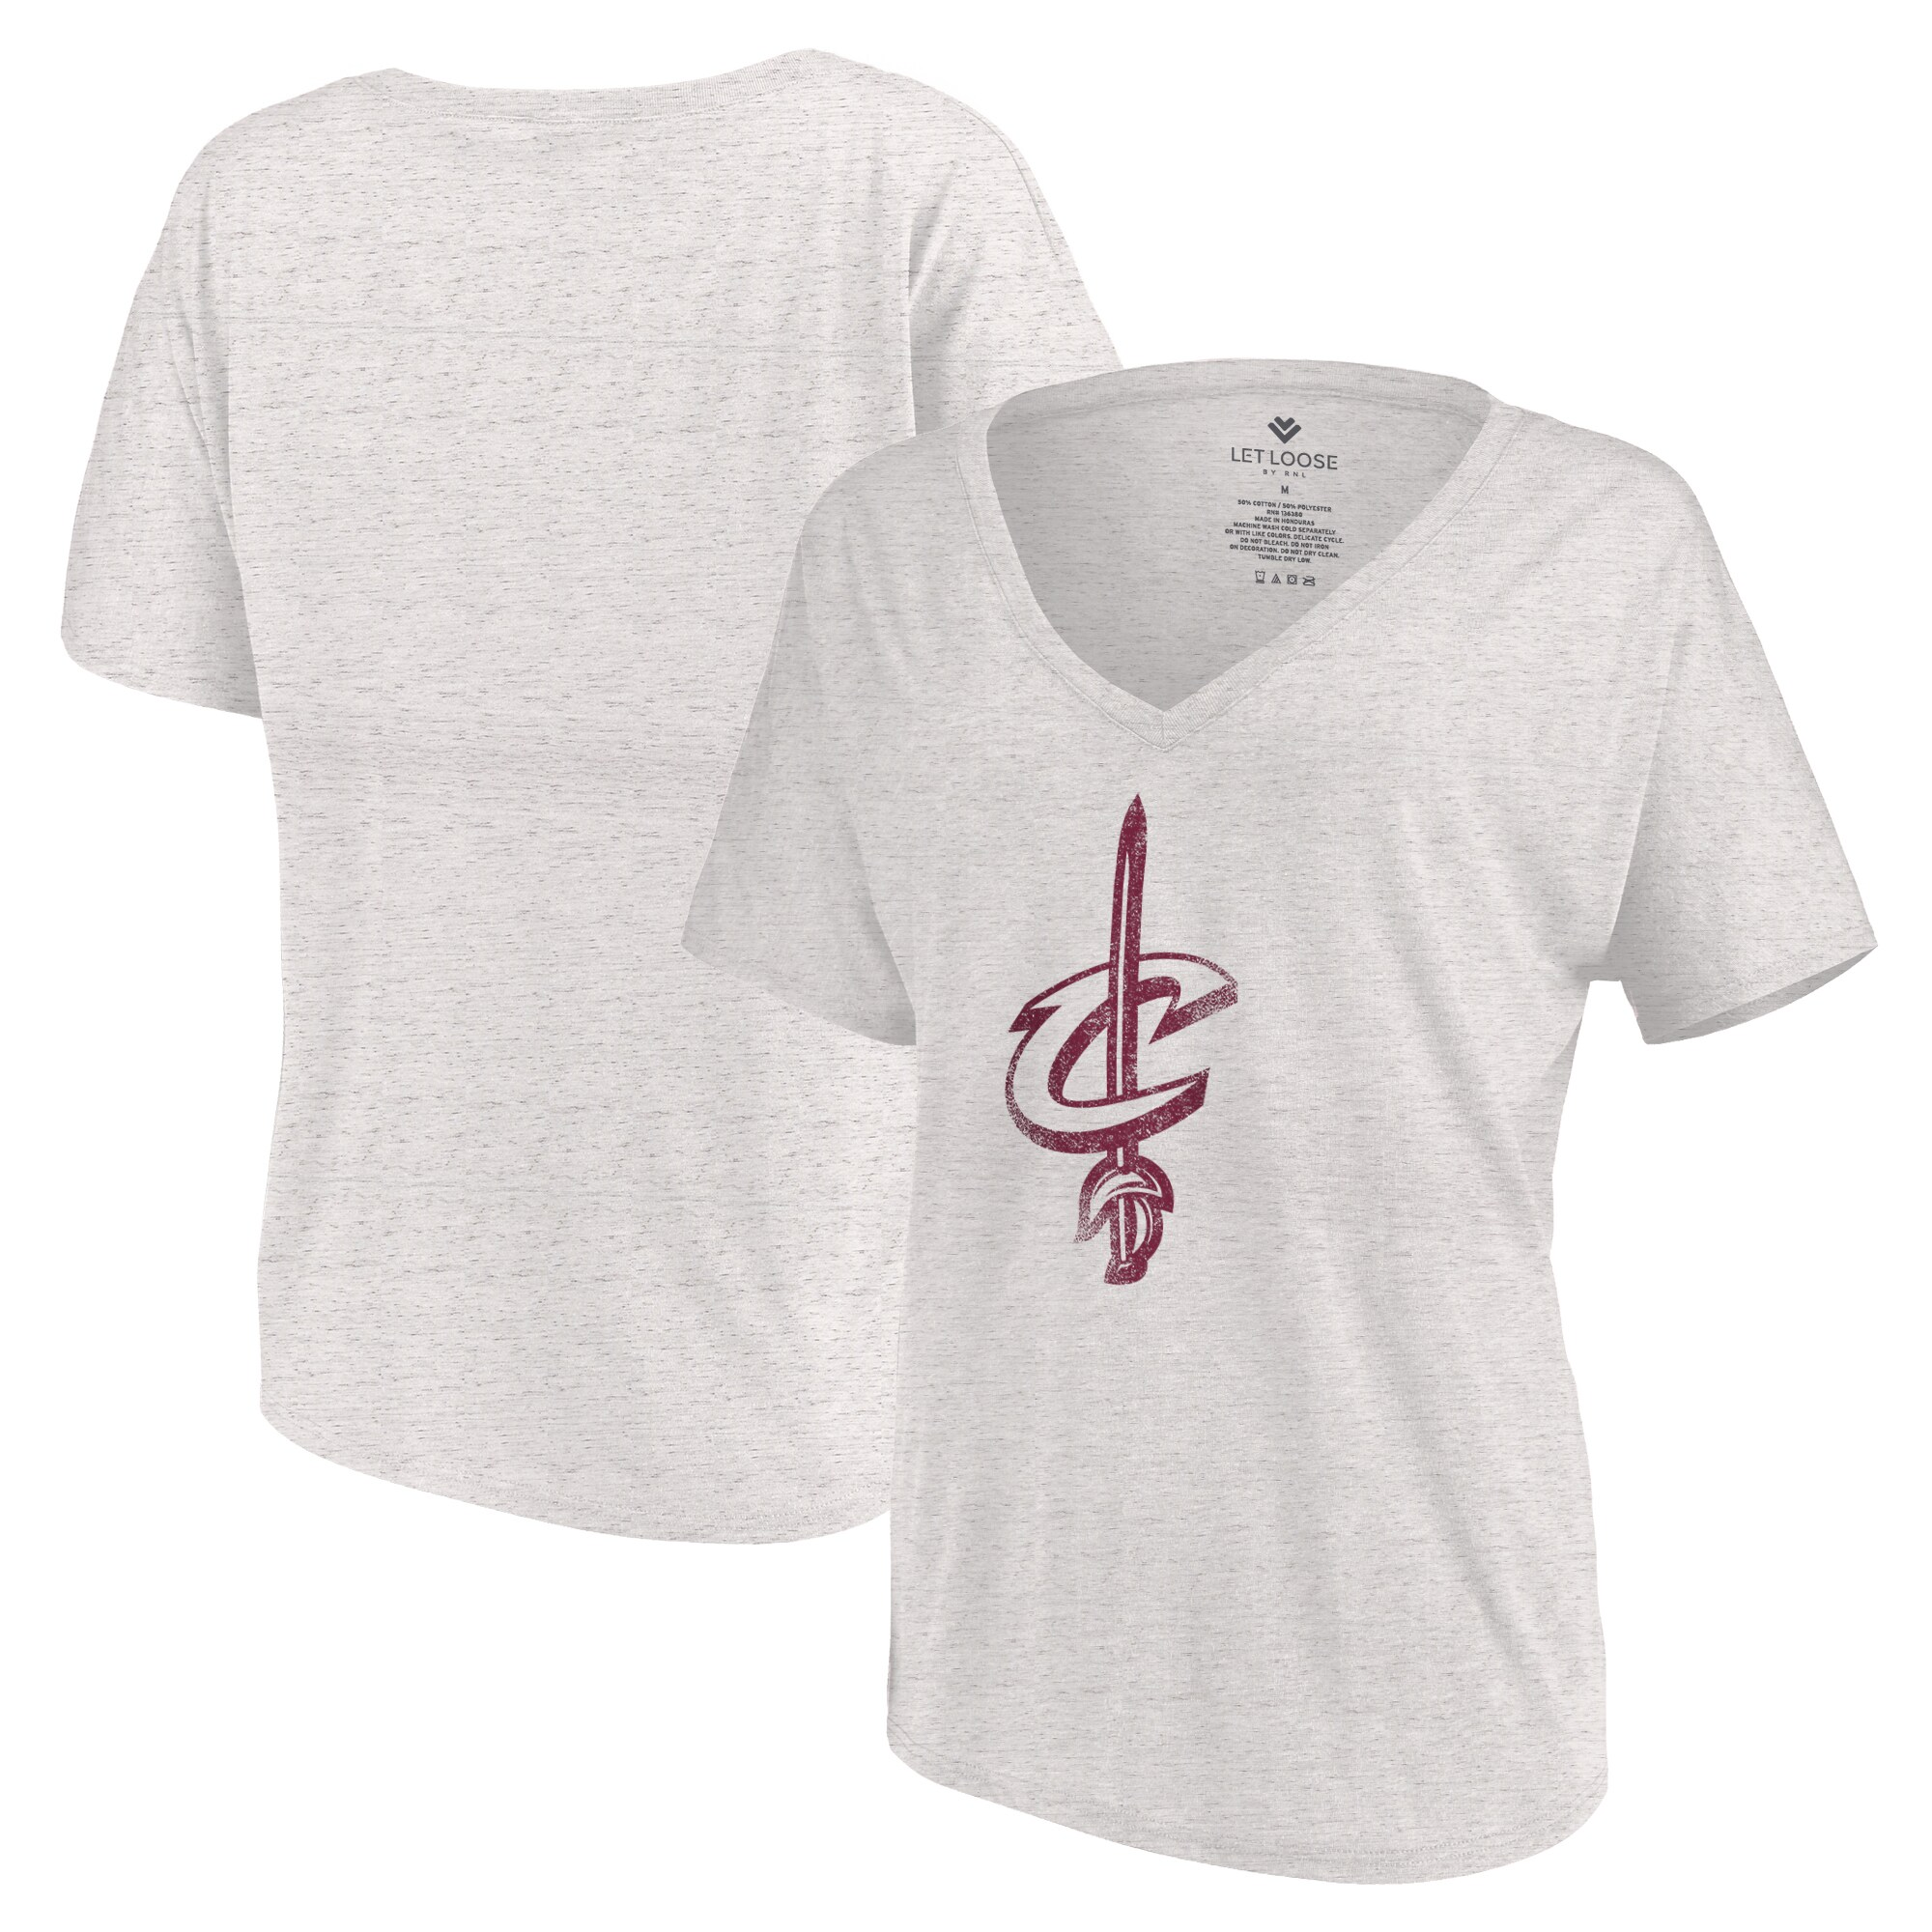 Cleveland Cavaliers Let Loose by RNL Women's Distressed Primary Logo V-Neck T-Shirt - White Marble